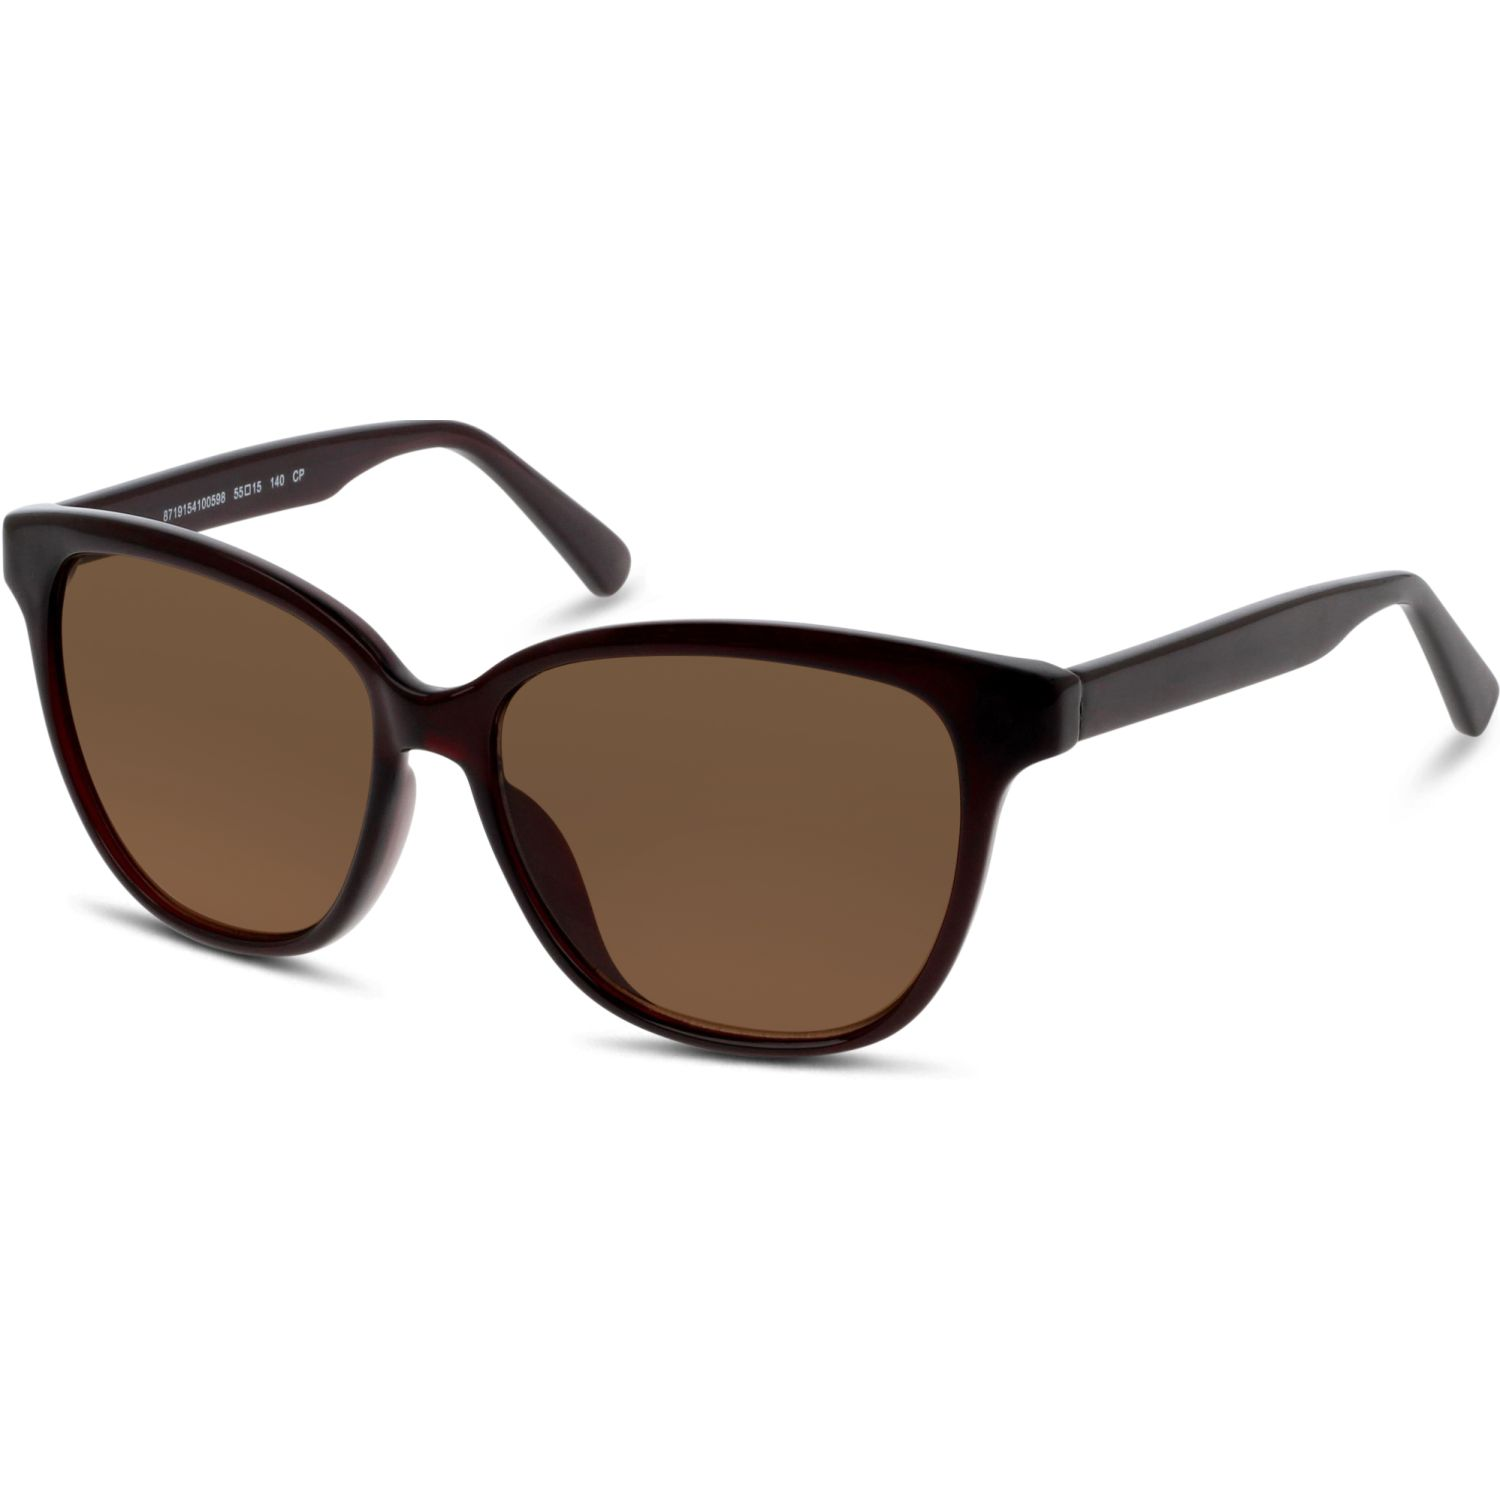 SEEN sesseef12#rrs Marron Lentes de Sol